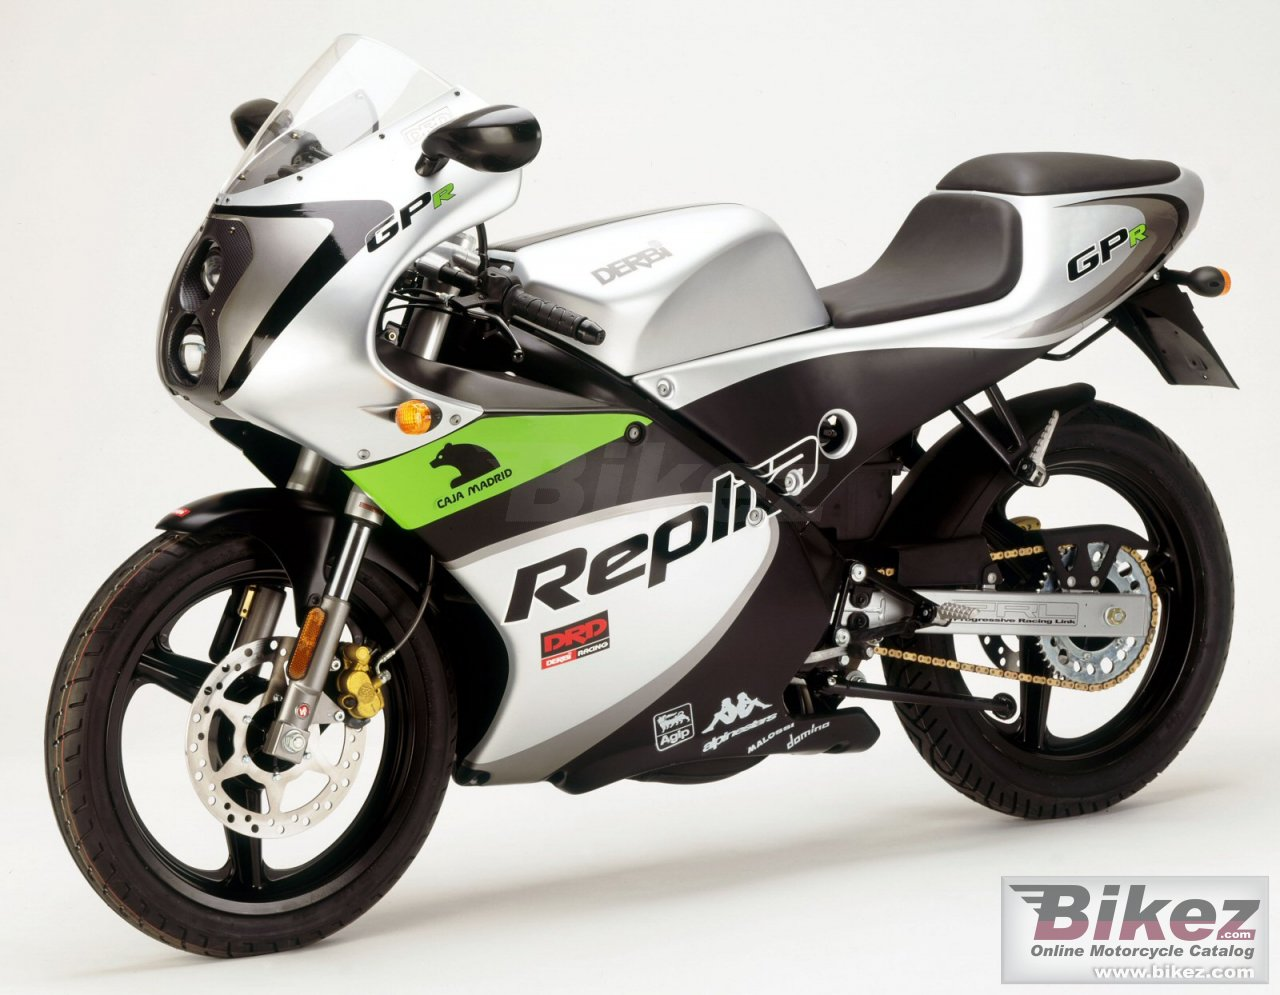 Big Derbi gpr 50 picture and wallpaper from Bikez.com